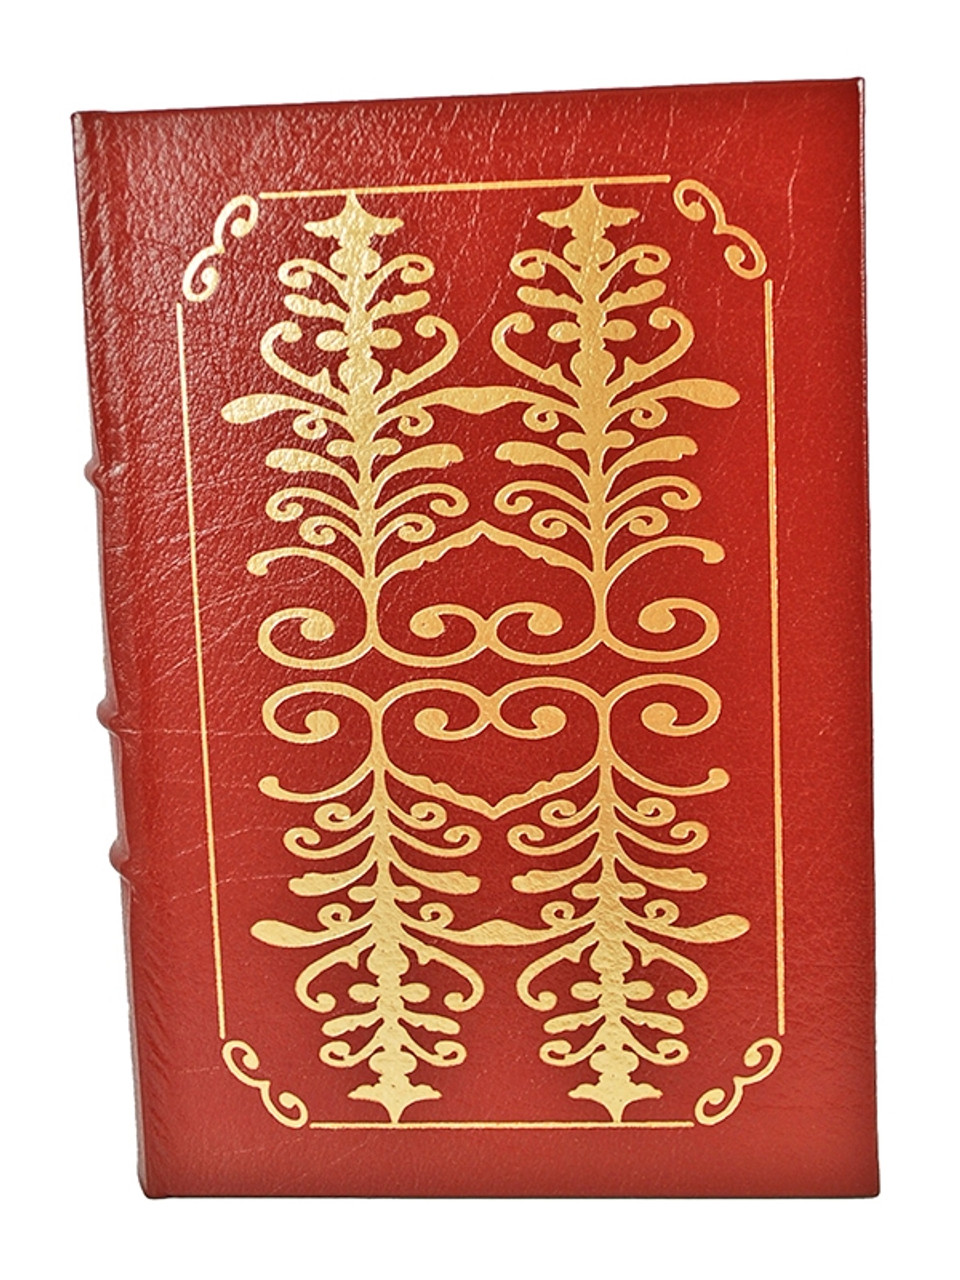 """Helen Keller """"The Story Of My Life"""" Leather Bound Collector's Edition [Very Fine]"""